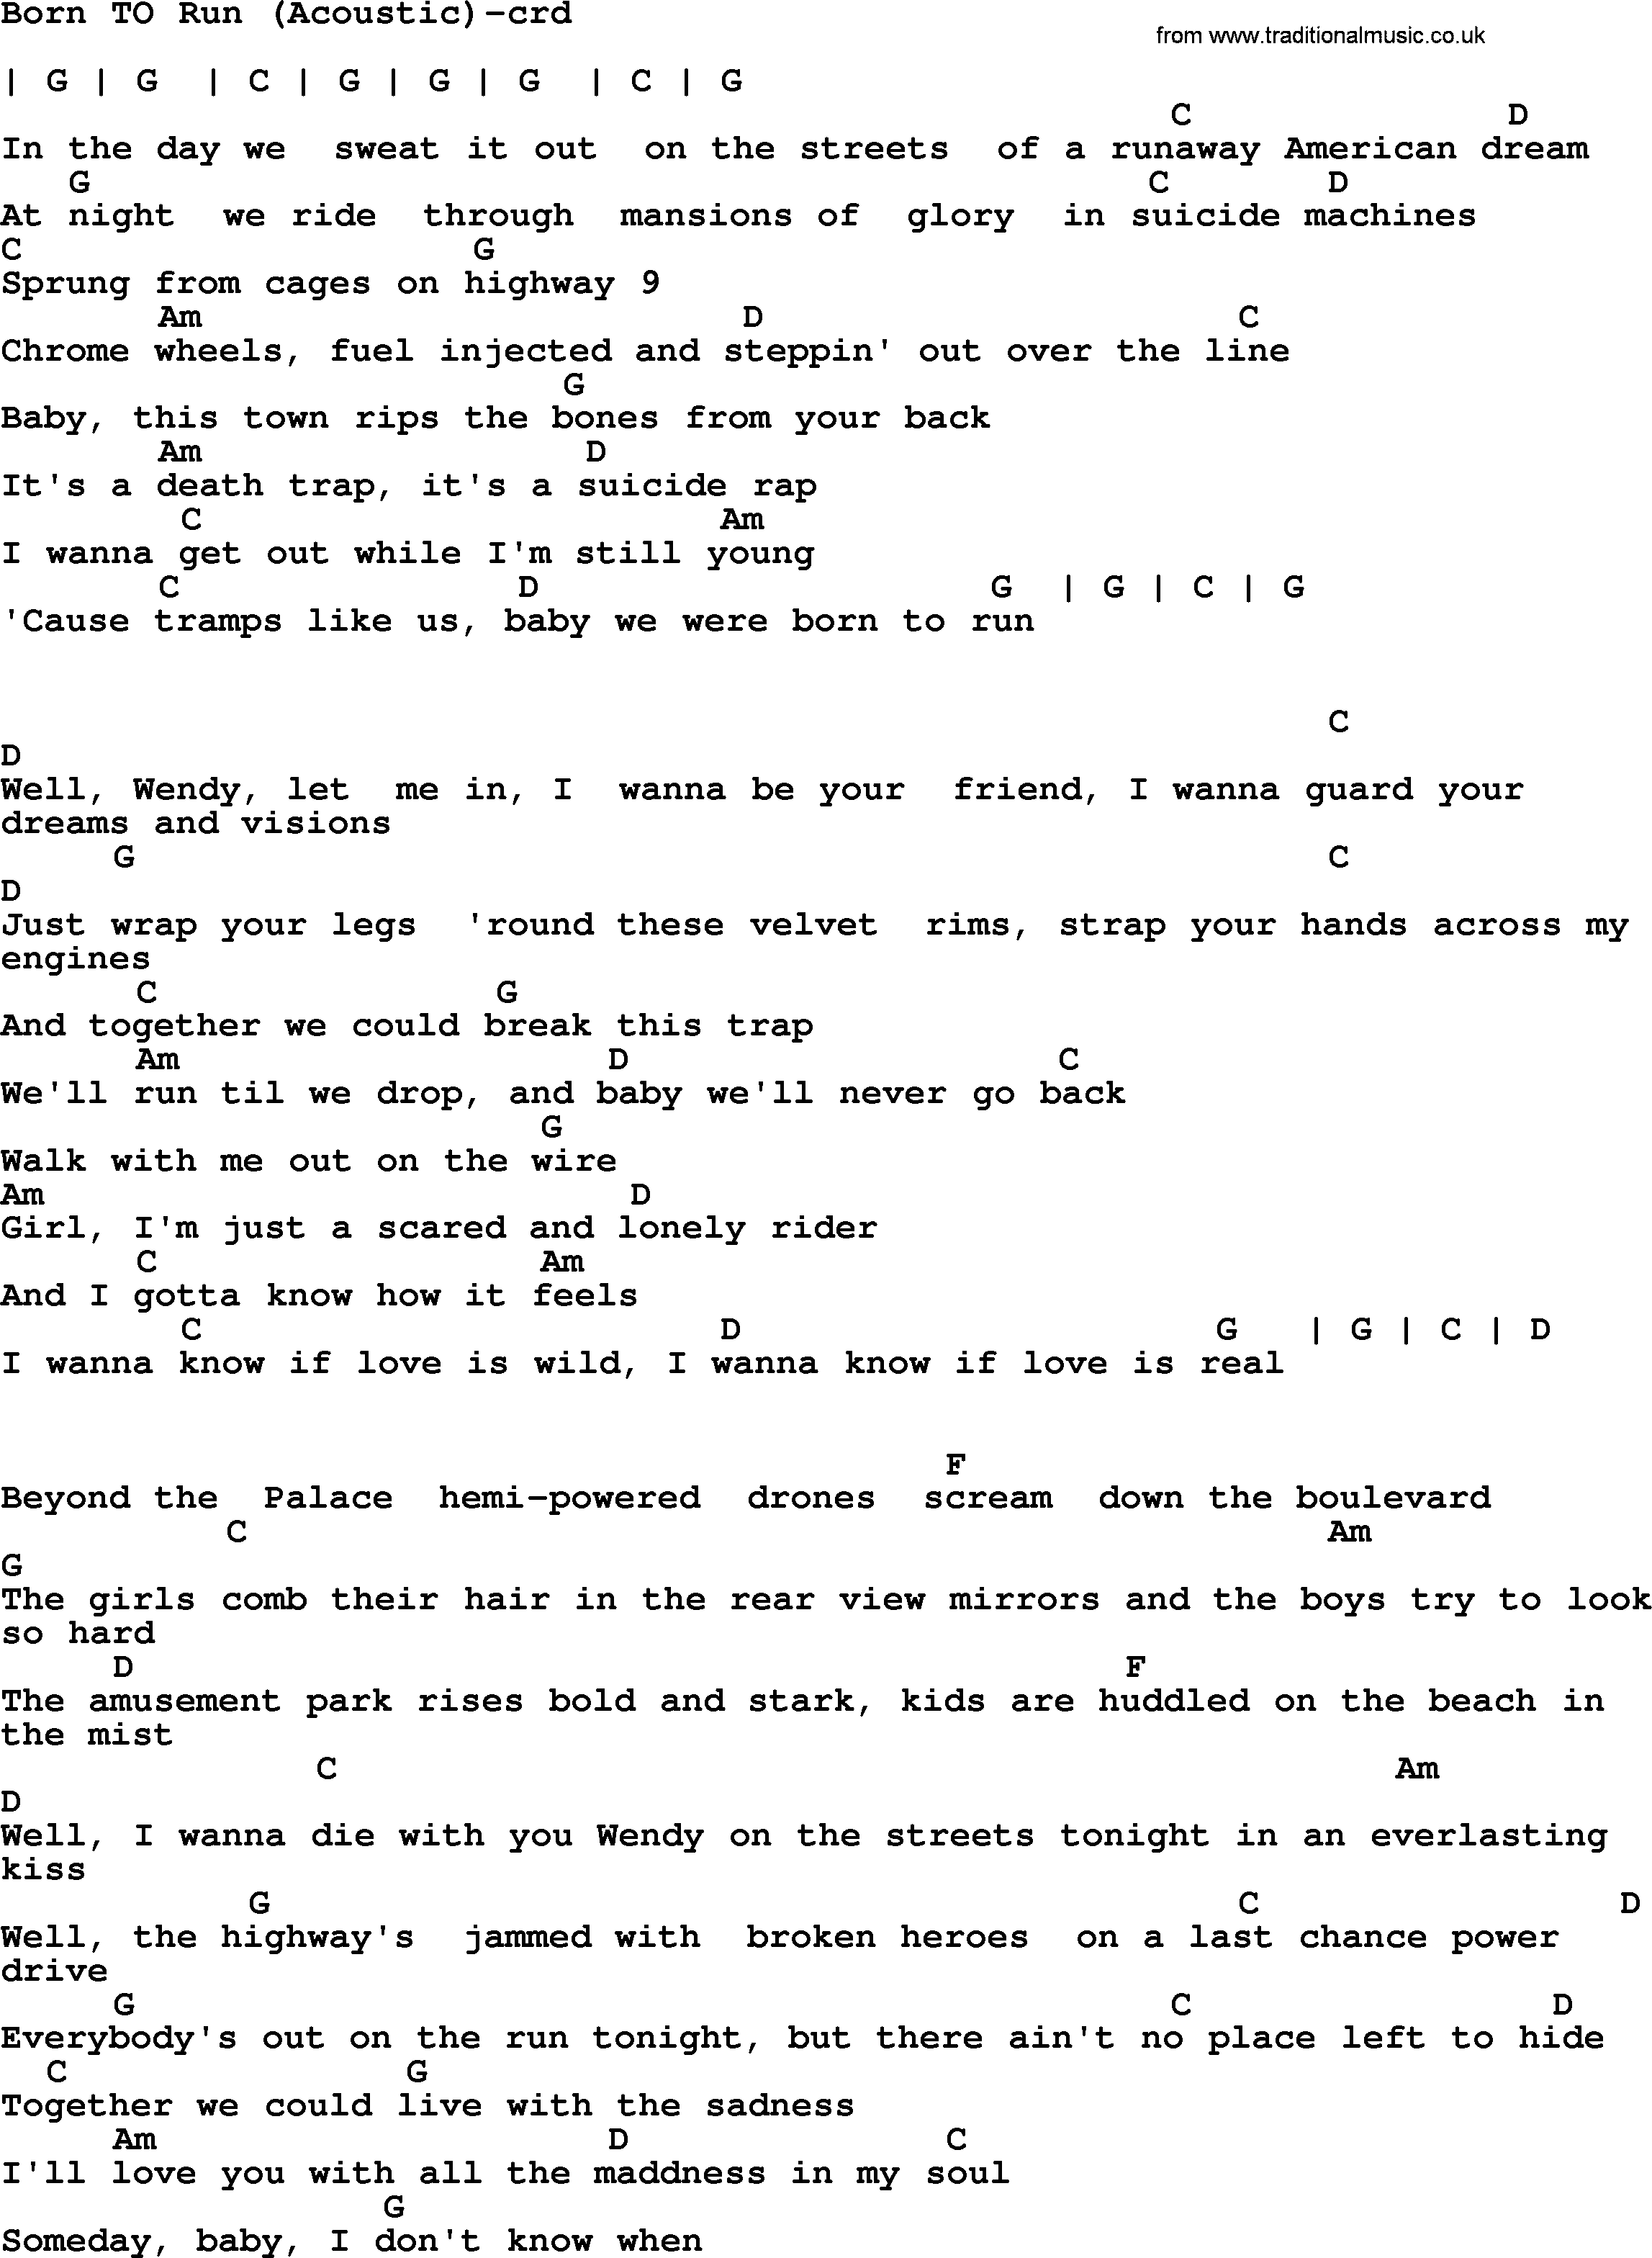 Bruce Springsteen Song Born To Runacoustic Lyrics And Chords